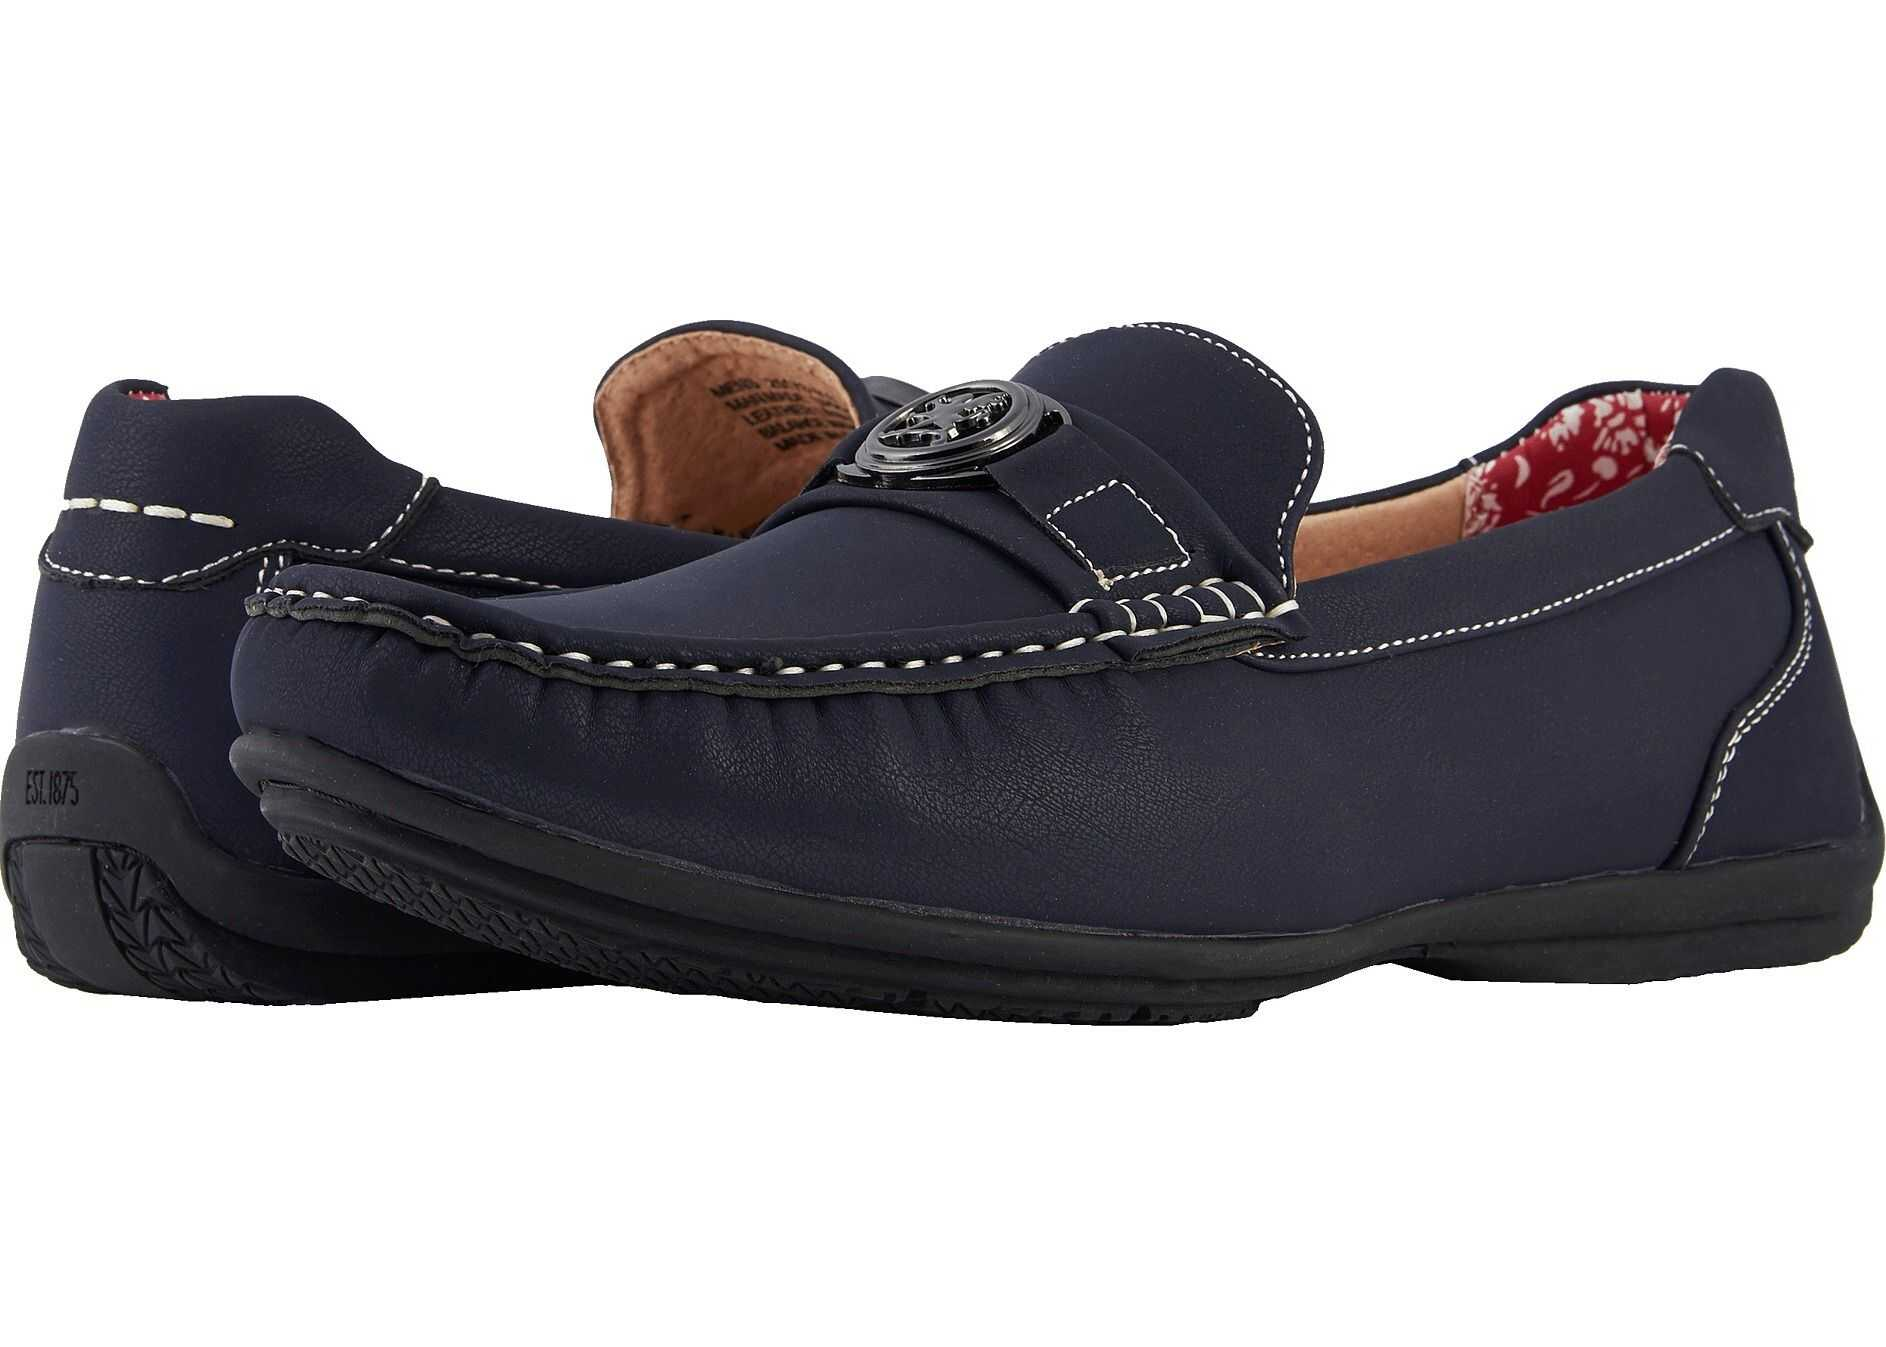 Stacy Adams Cyrus Slip On Casual Loafer Navy